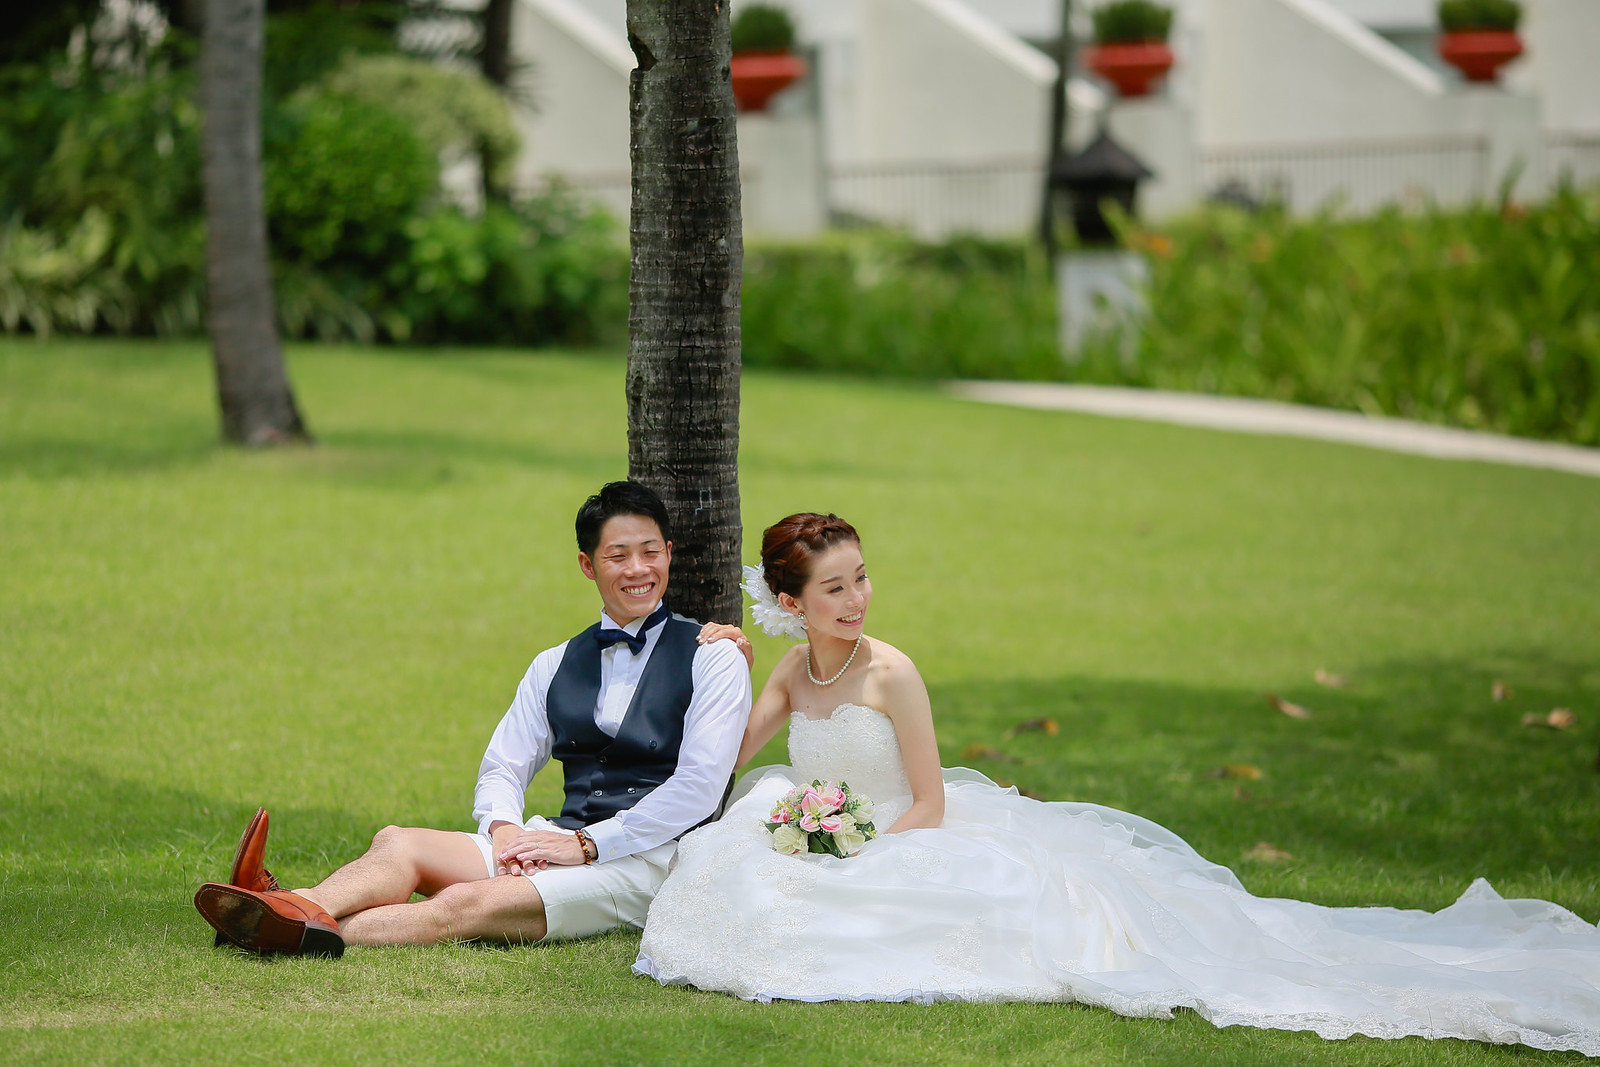 Wedding Photographer Shangrila, Cebu Wedding Photographer